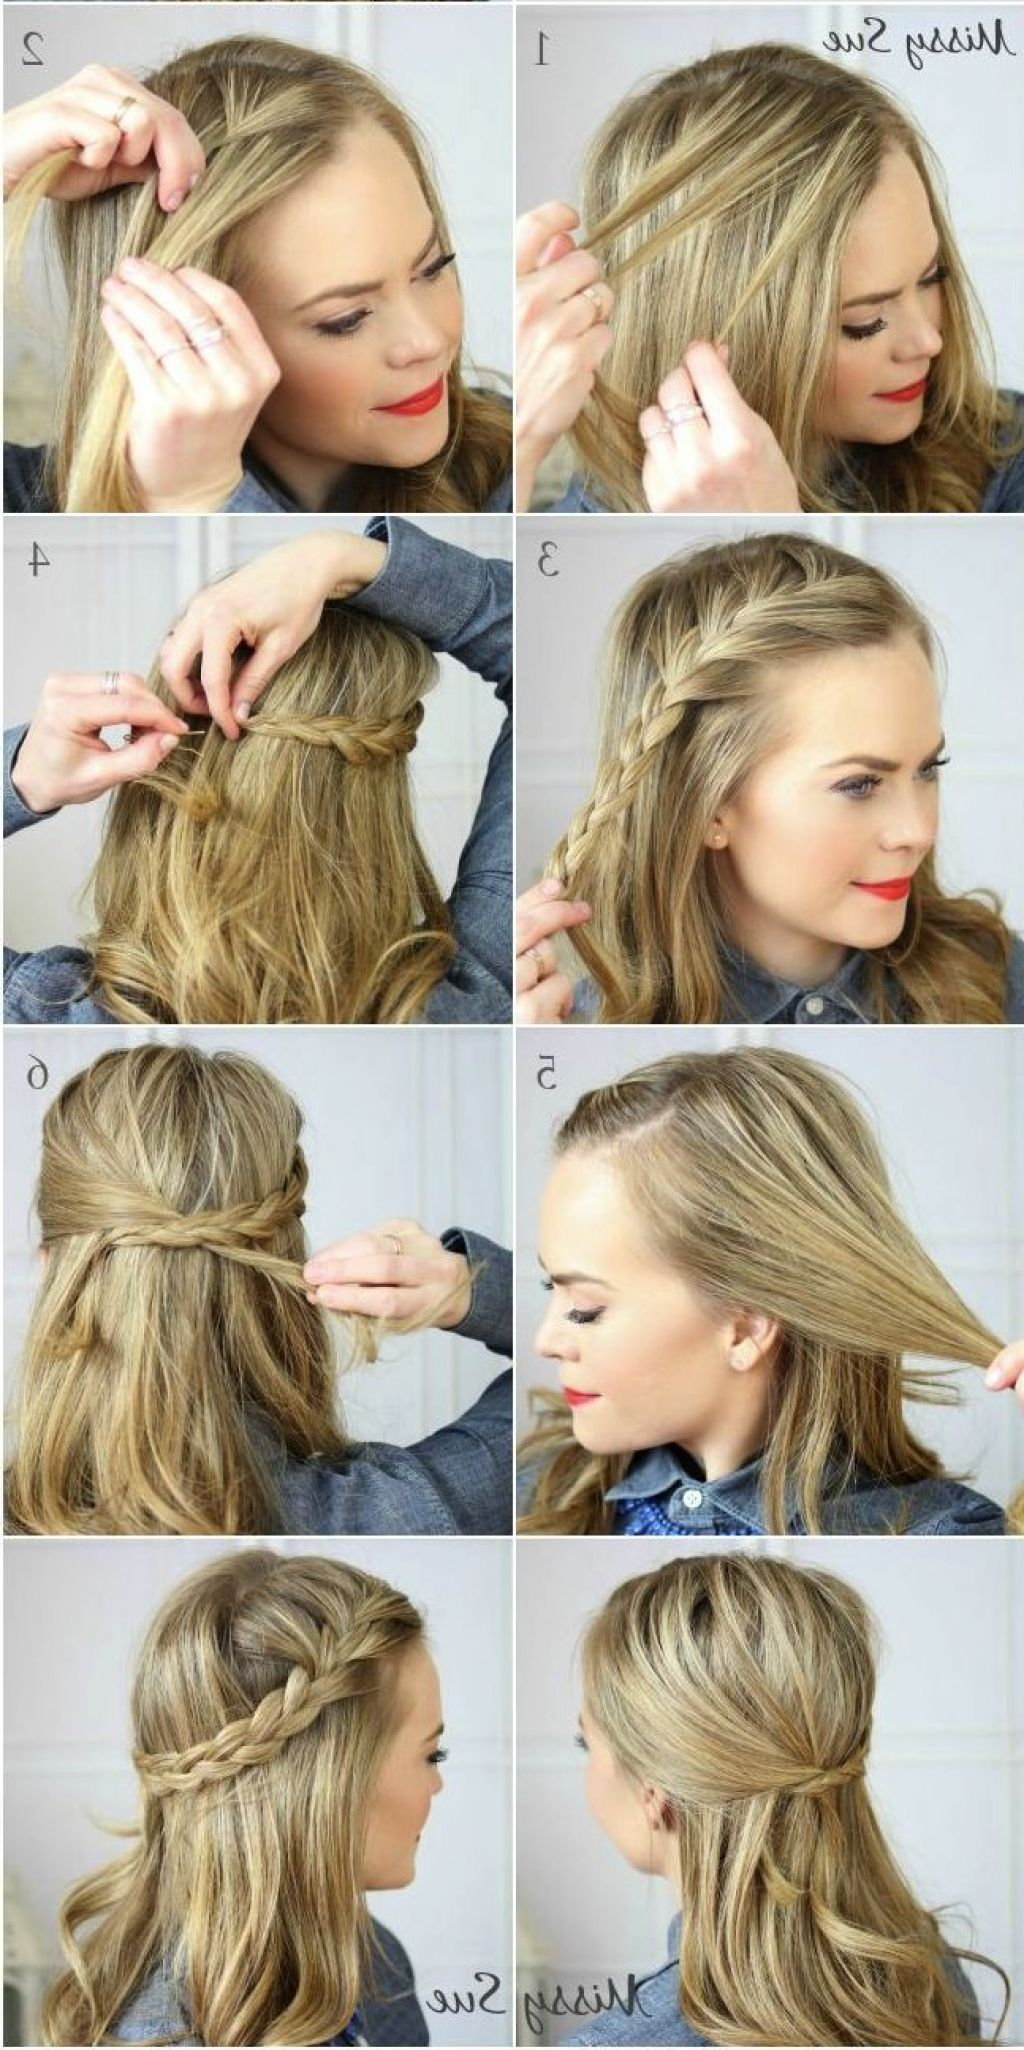 203 Casual Hairstyles For Long Hair Hairstyles 2019 Medium Hair Styles Medium Length Hair Styles Cute Hairstyles For Medium Hair